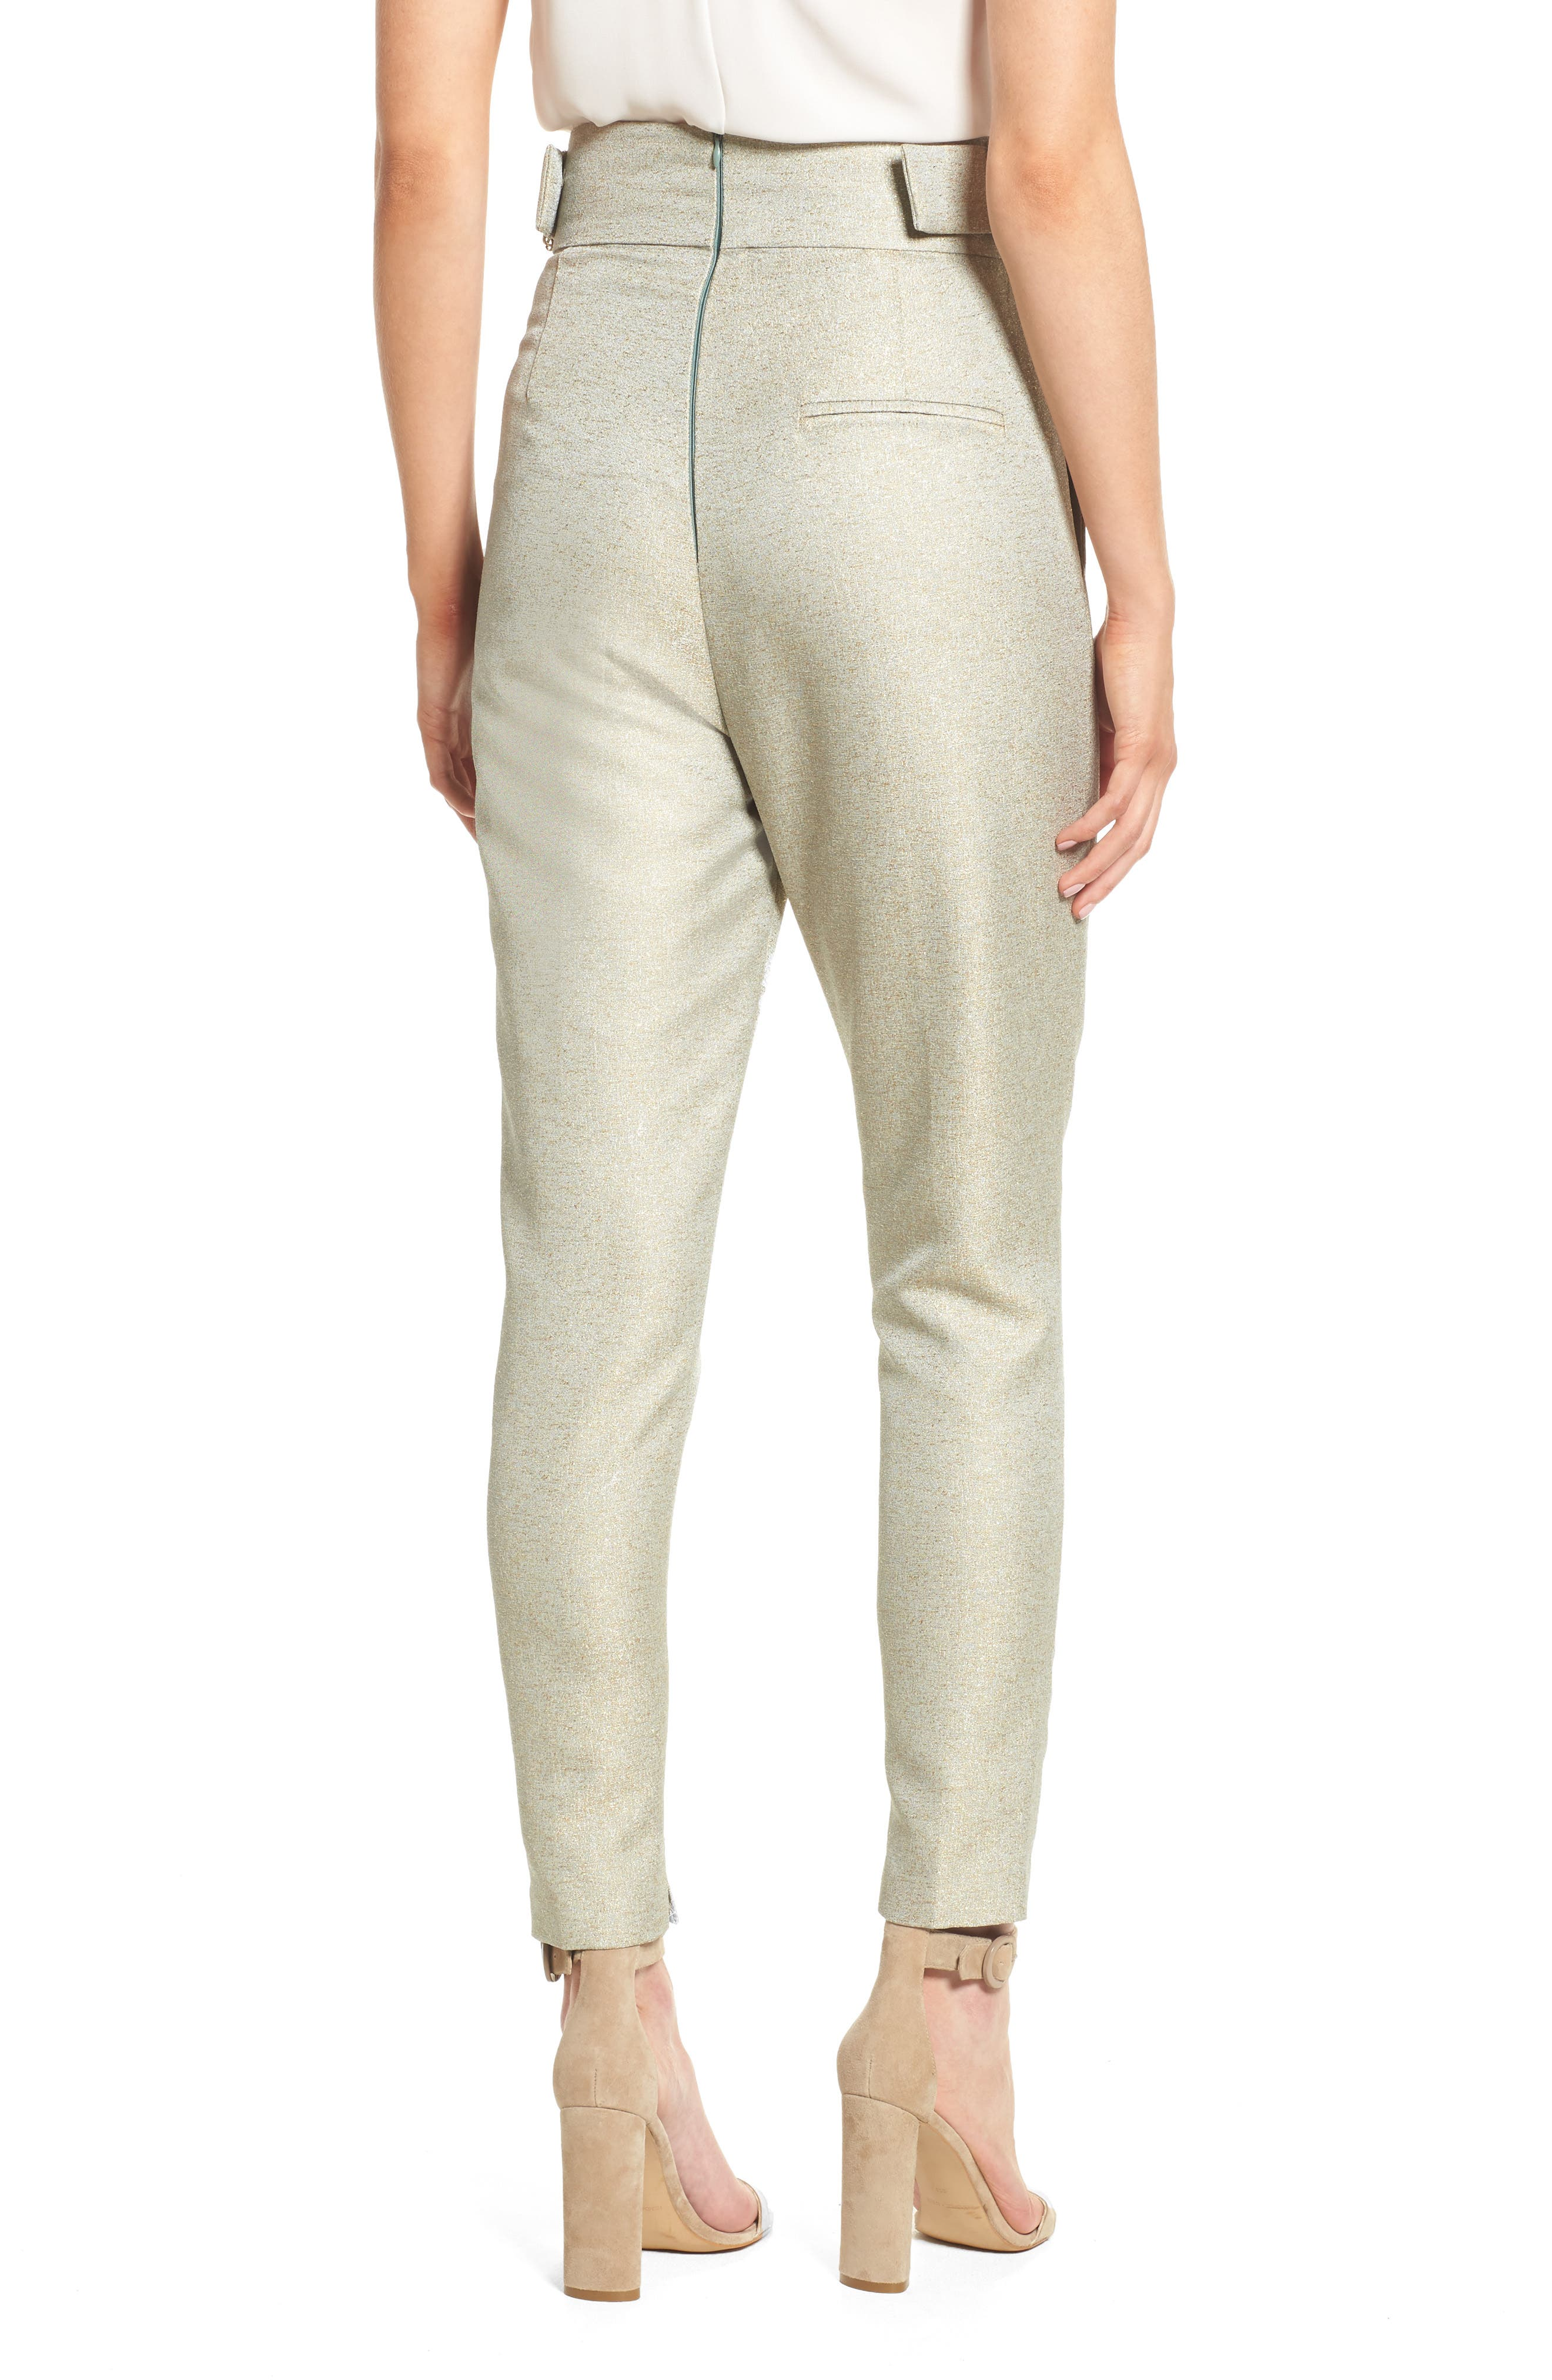 Valencia High Waist Ankle Skinny Pants,                             Alternate thumbnail 3, color,                             Sage